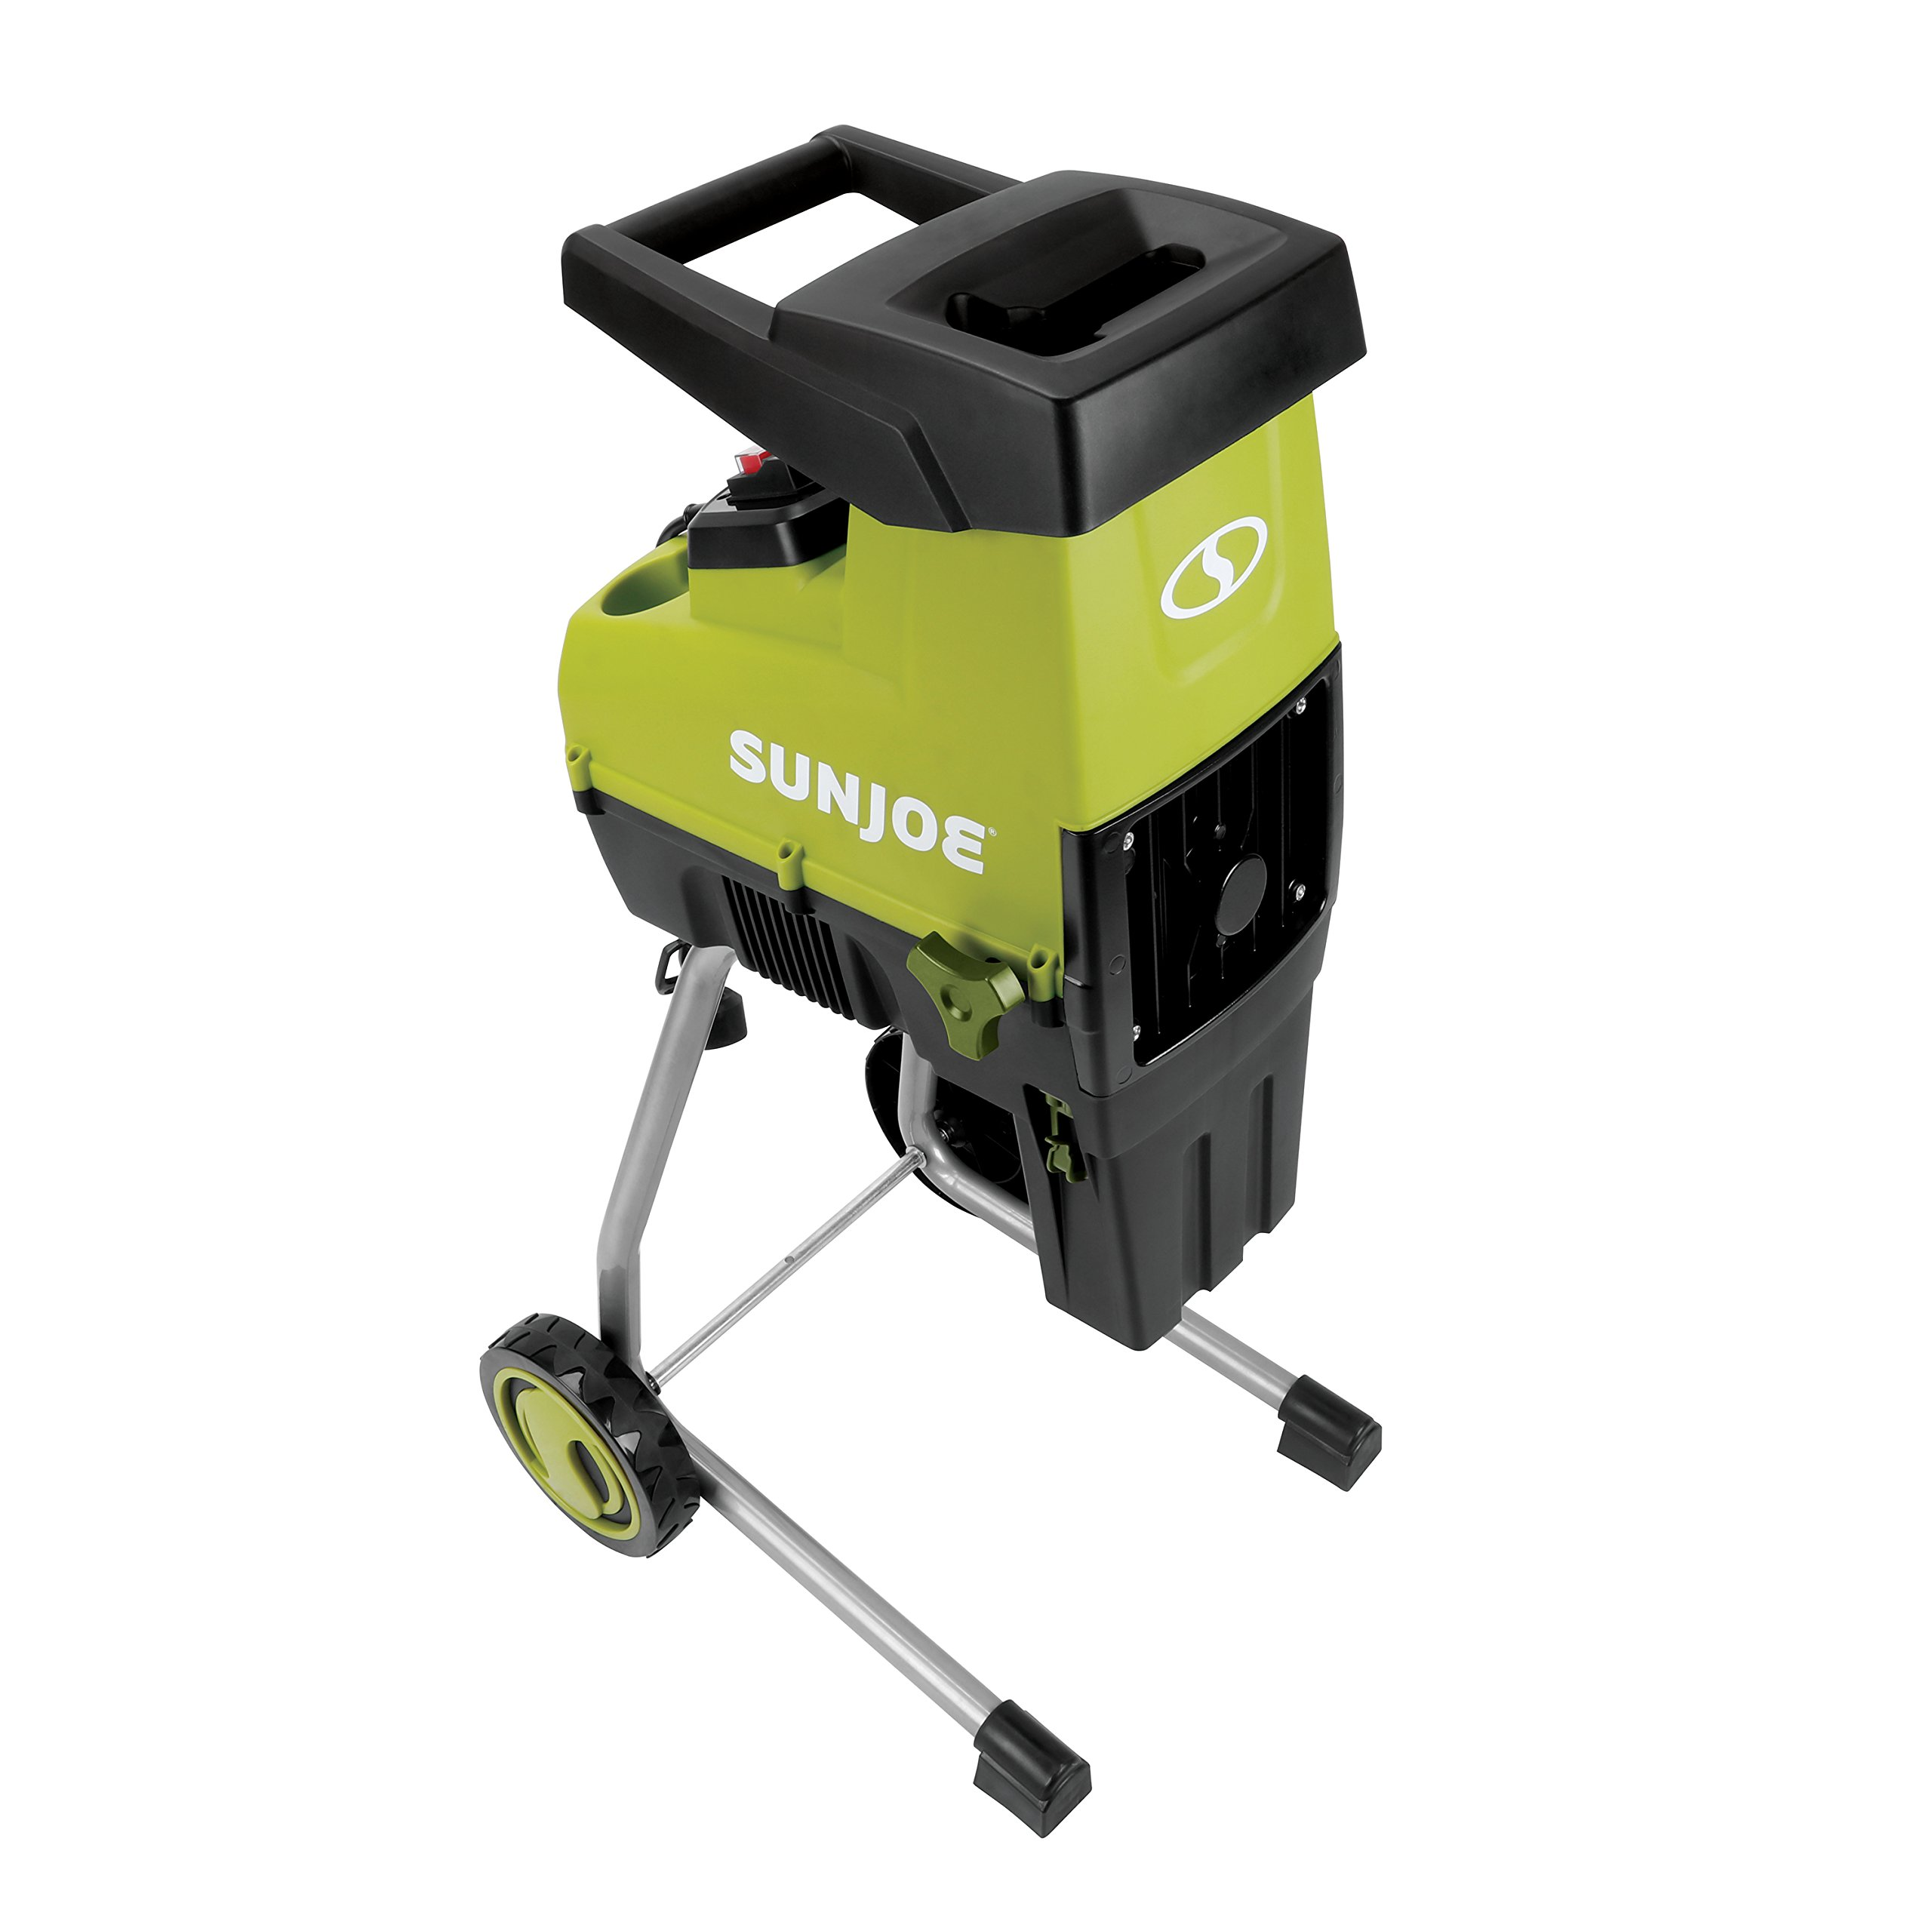 Sun Joe CJ603E 15-Amp 1.7-Inch Cutting Diameter Electric Silent Wood Chipper/Shredder